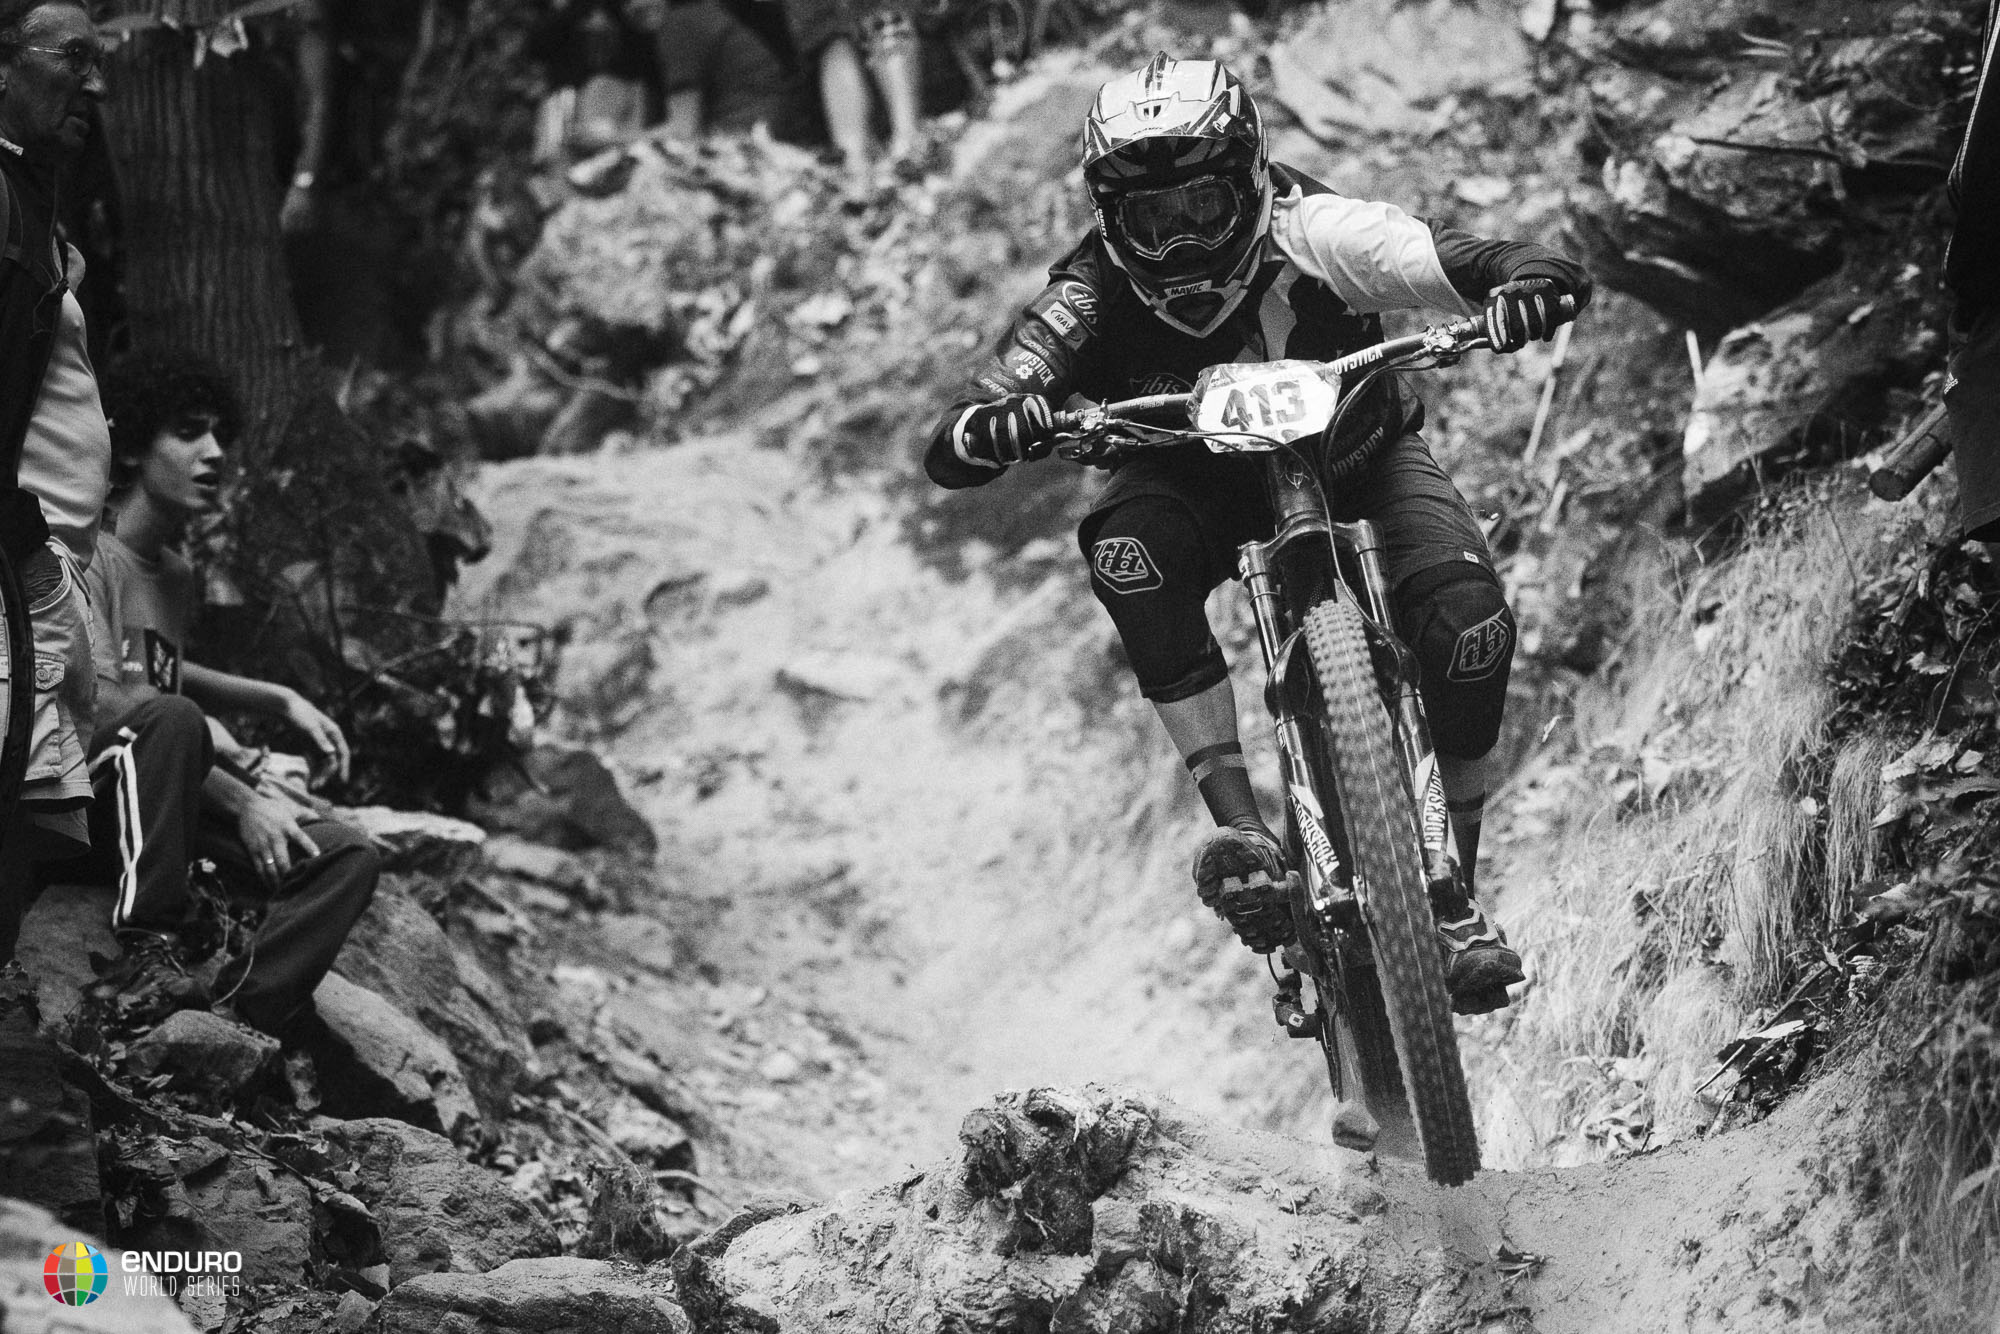 Anne Carolin Chausson raced her way to third place today, her last ever day of EWS racing as she's not racing tomorrow